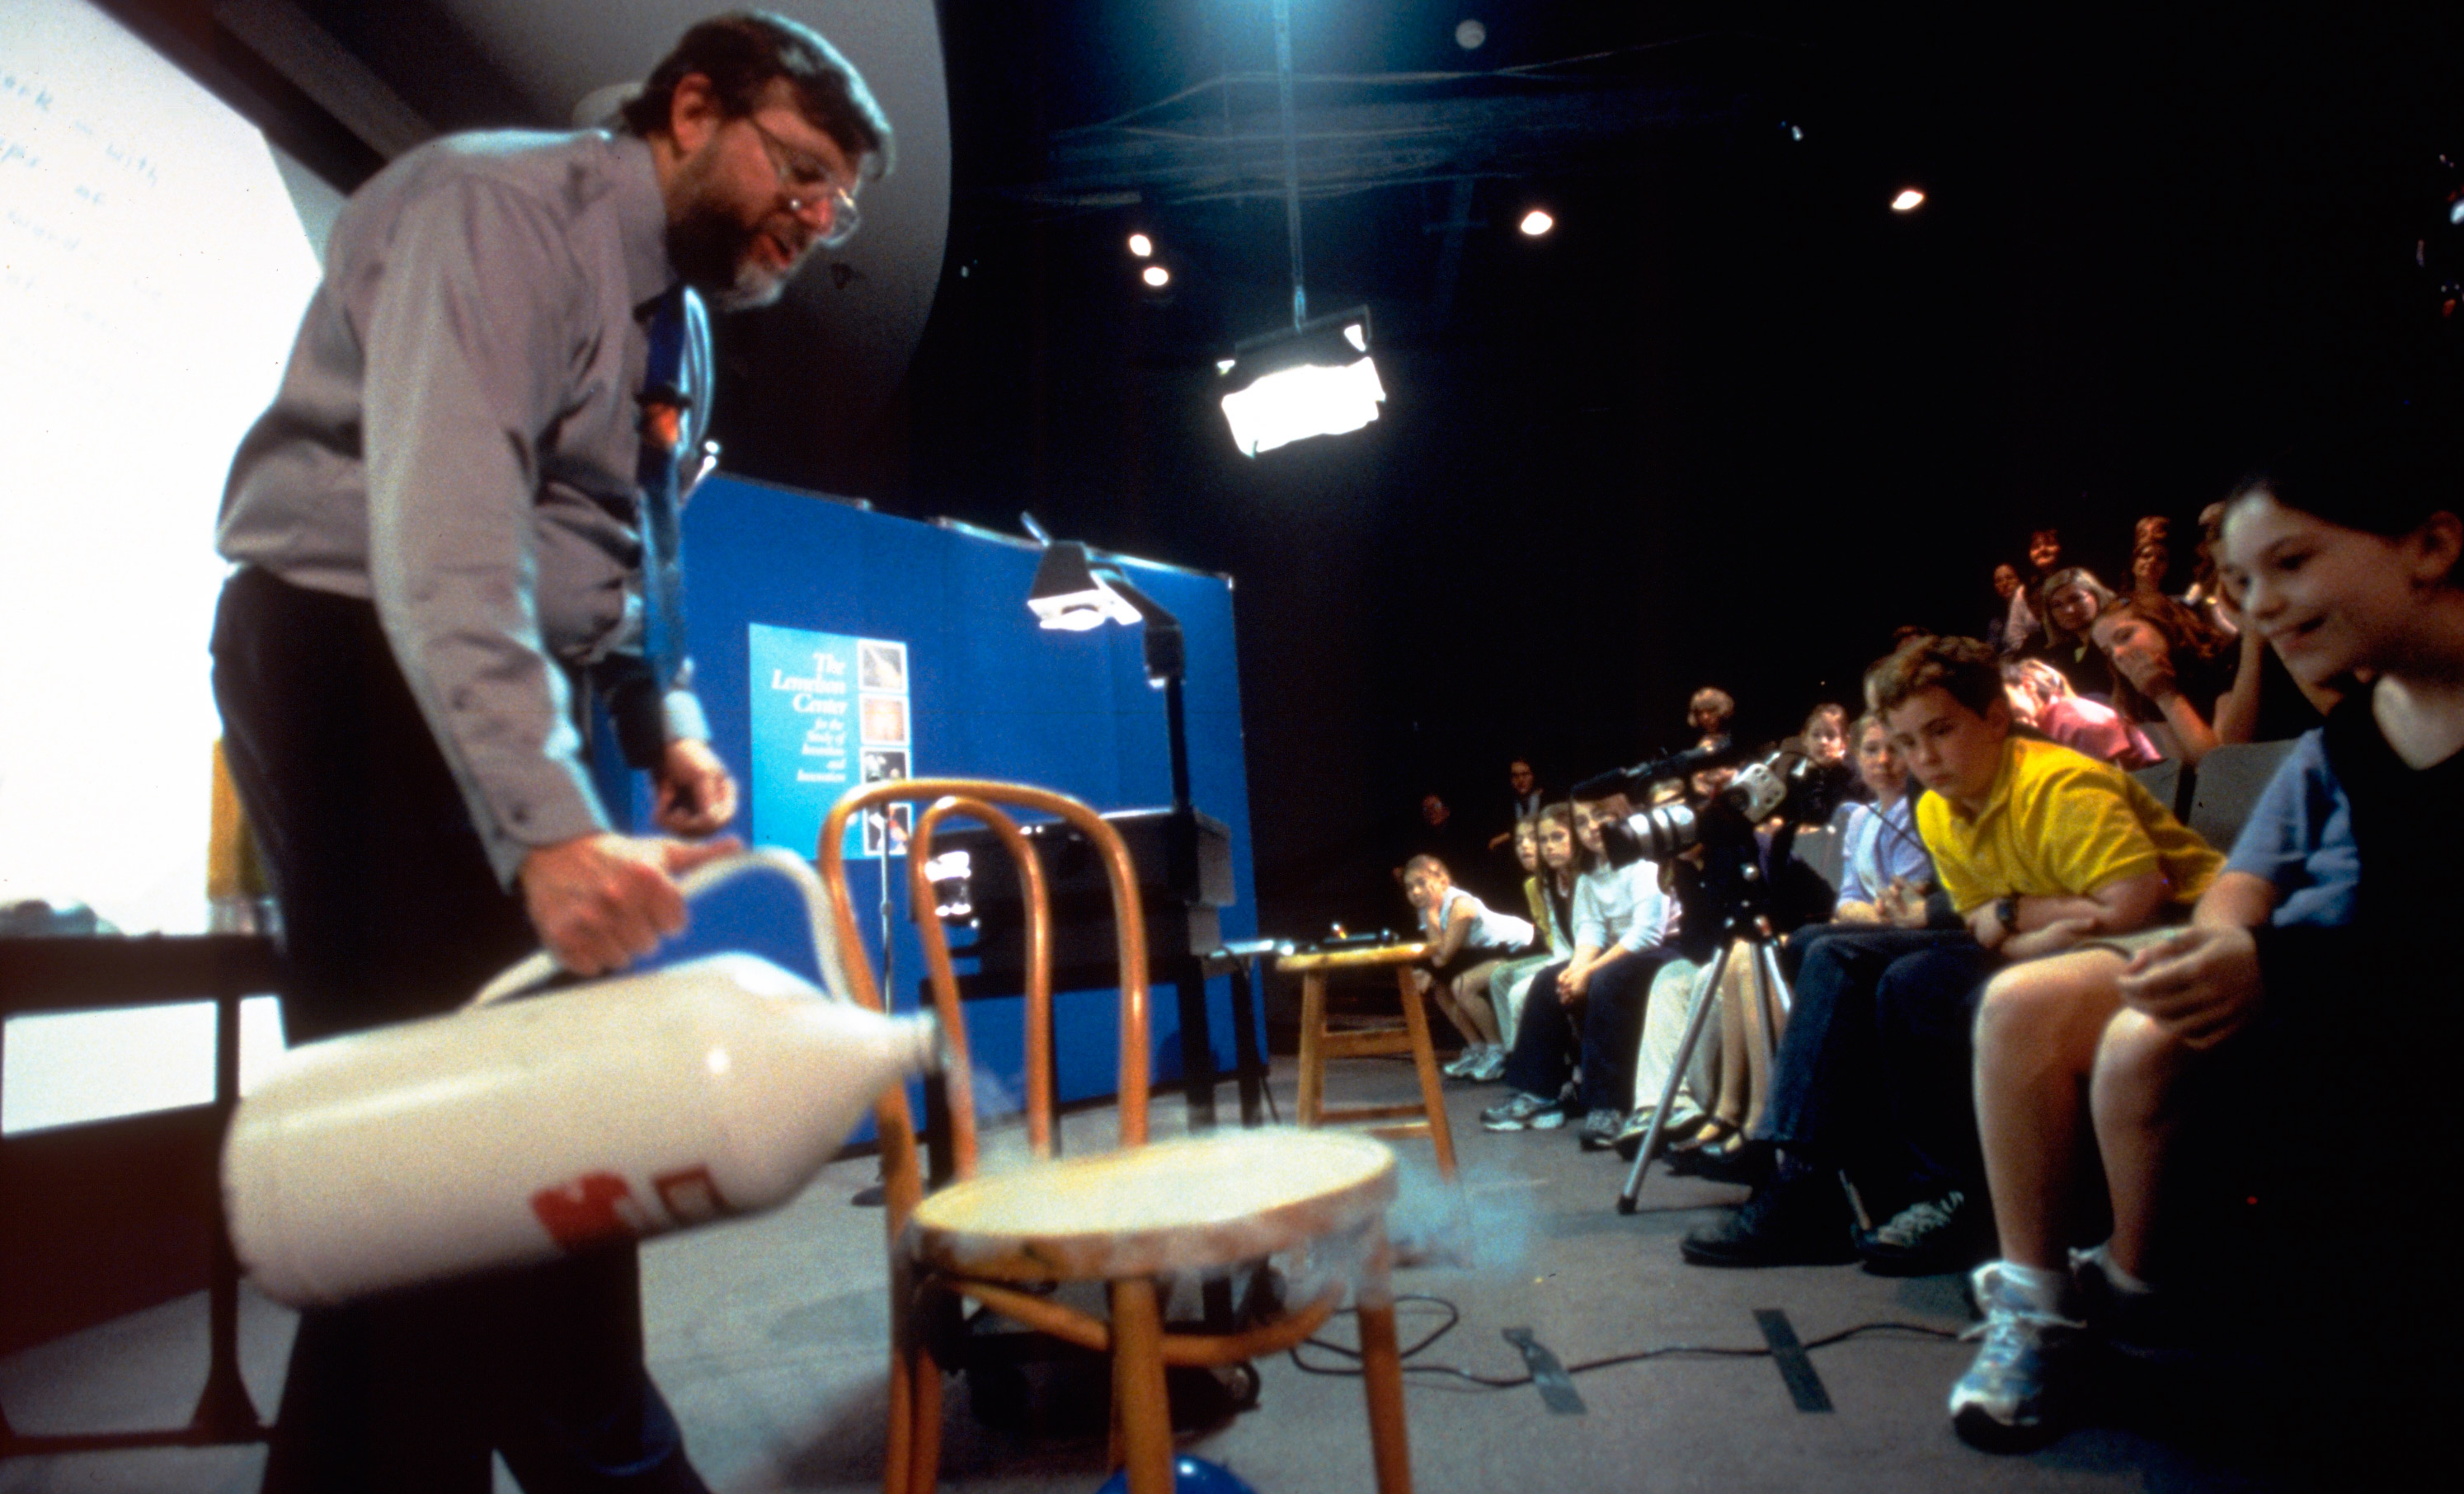 Image of William Phillips demonstrating Liquid Nitrogen